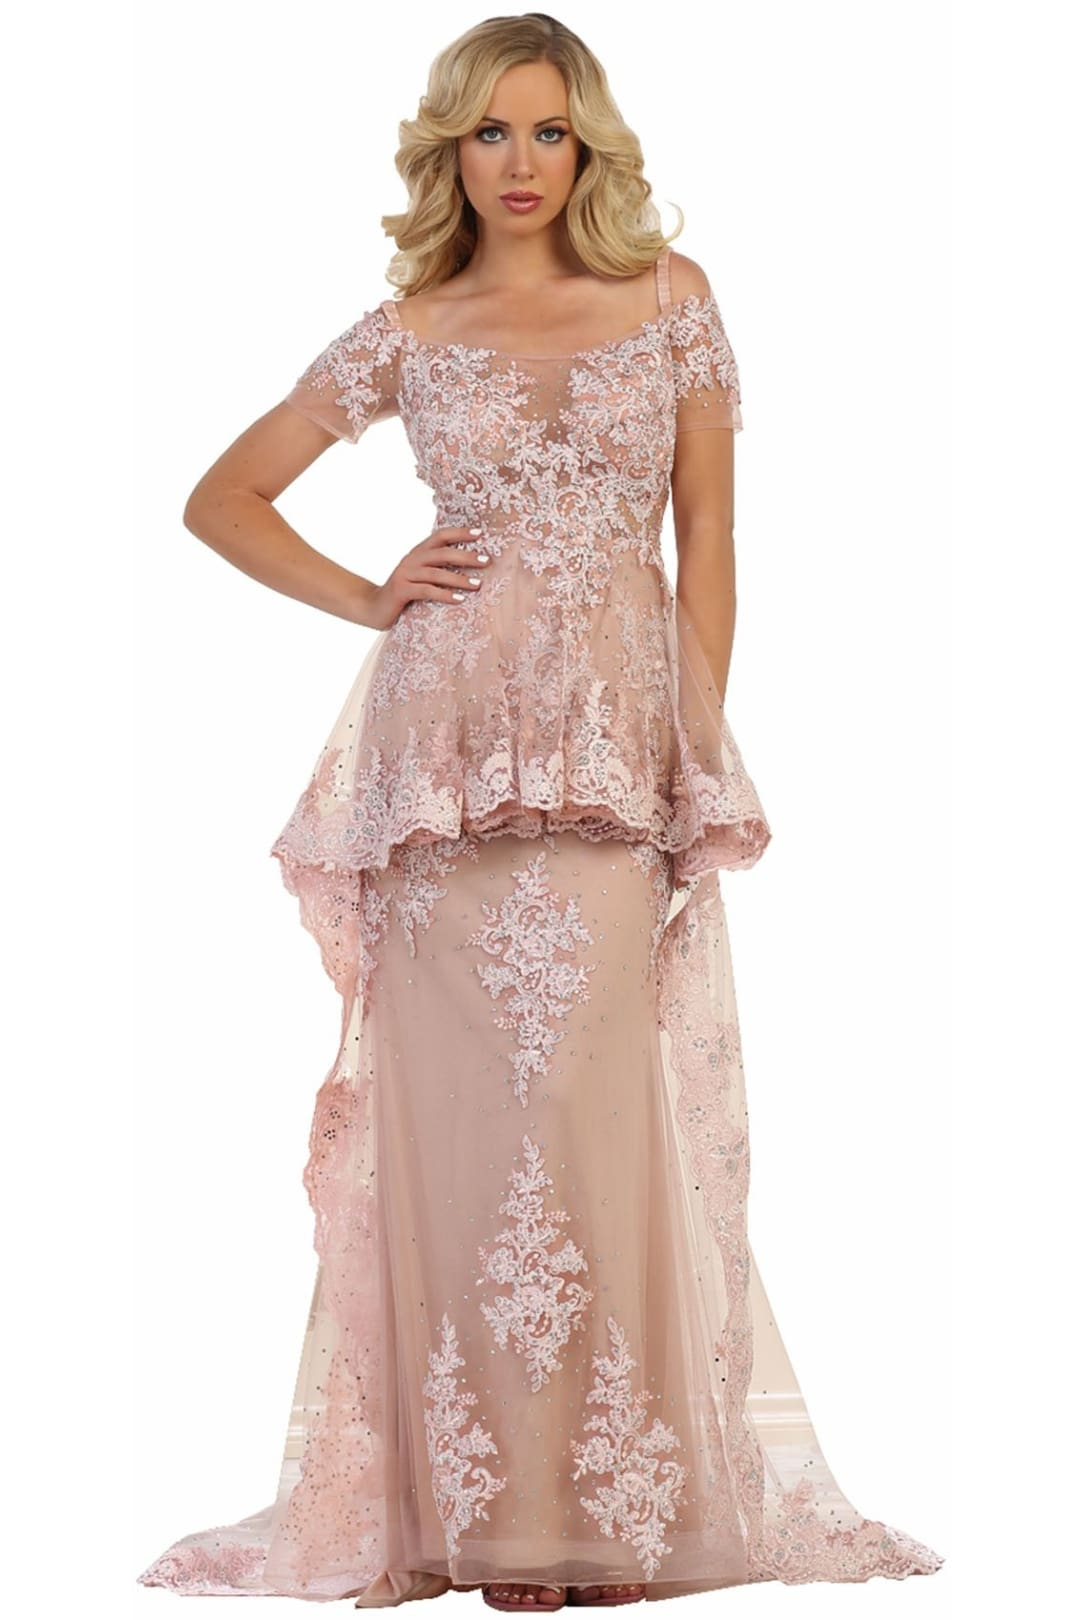 Peplum Evening Gown - Dusty Rose / 4